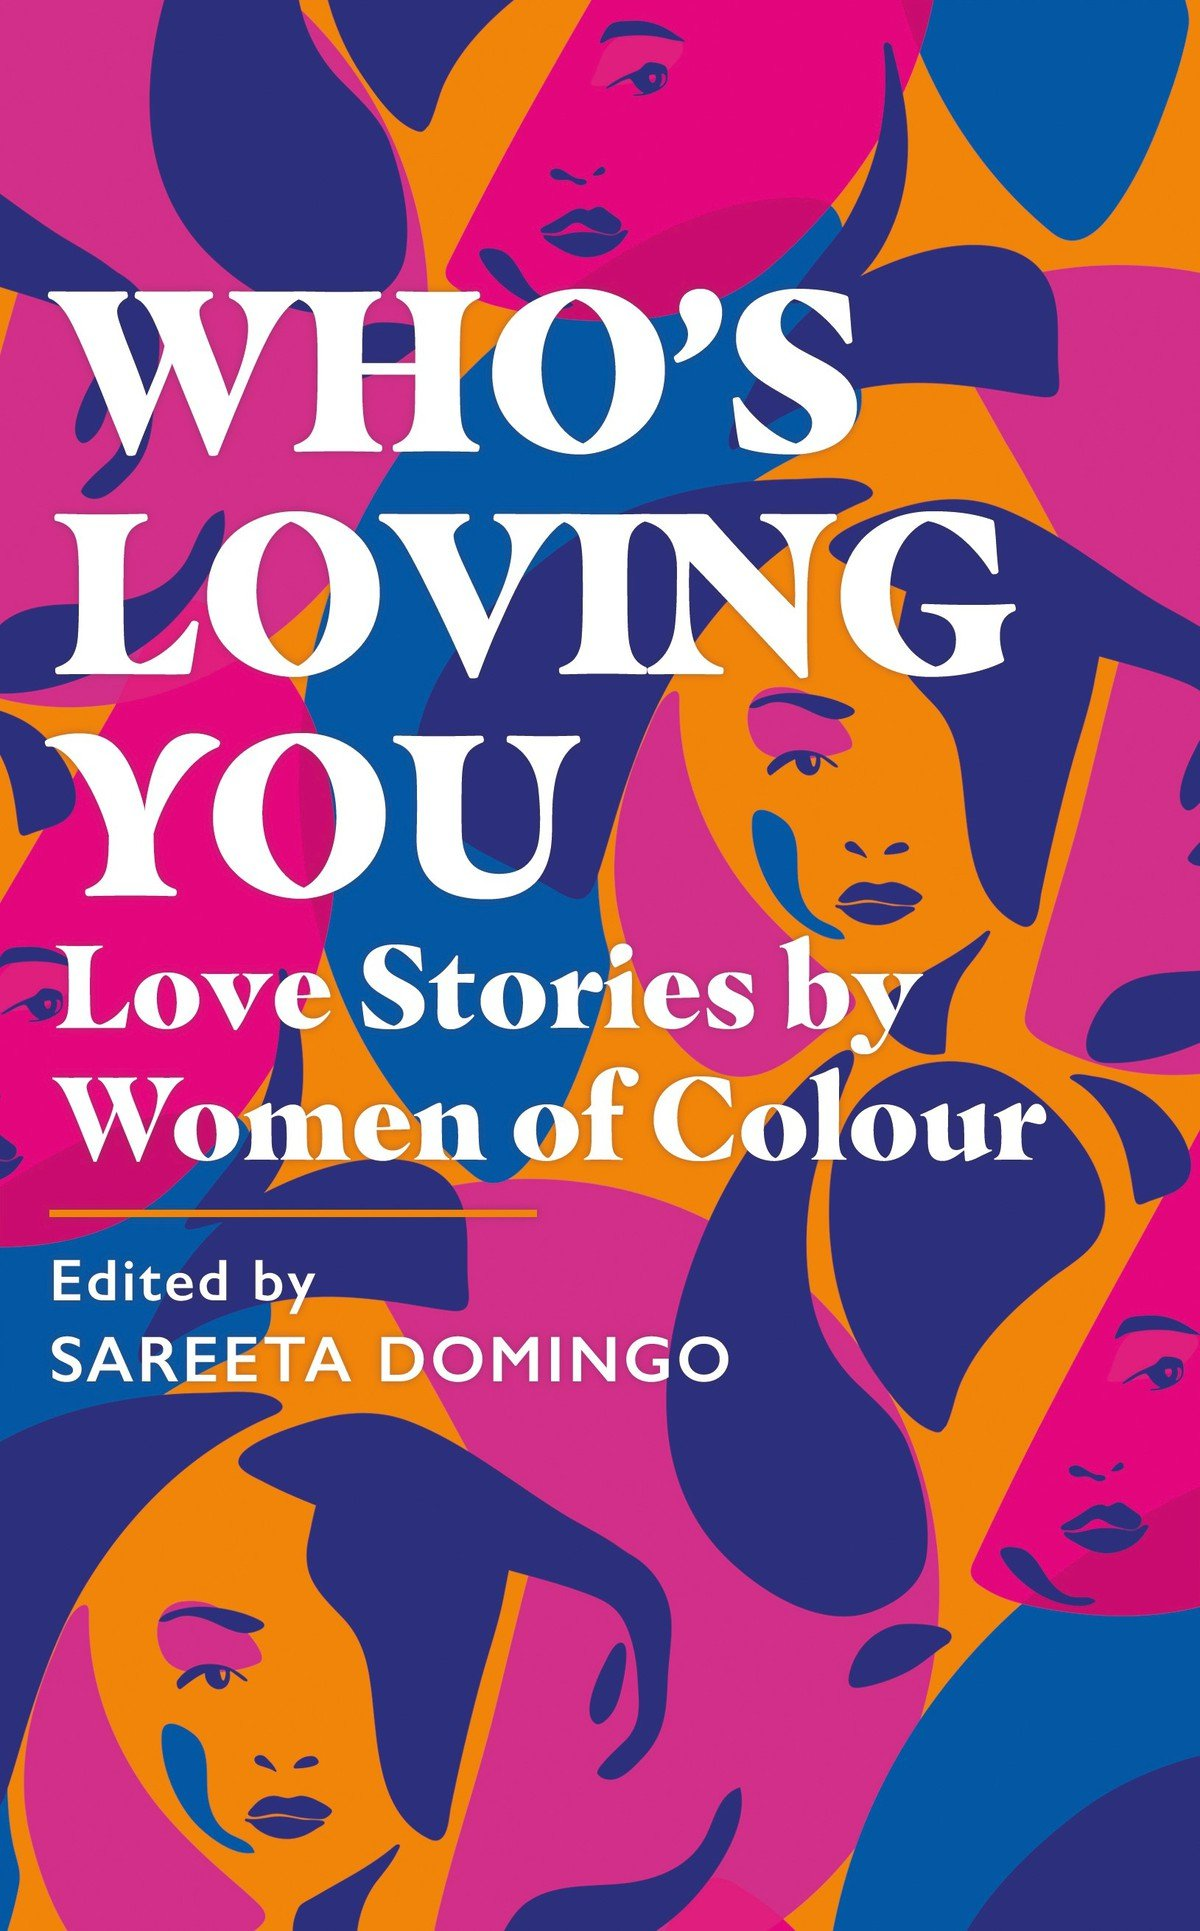 Who's Loving You book cover